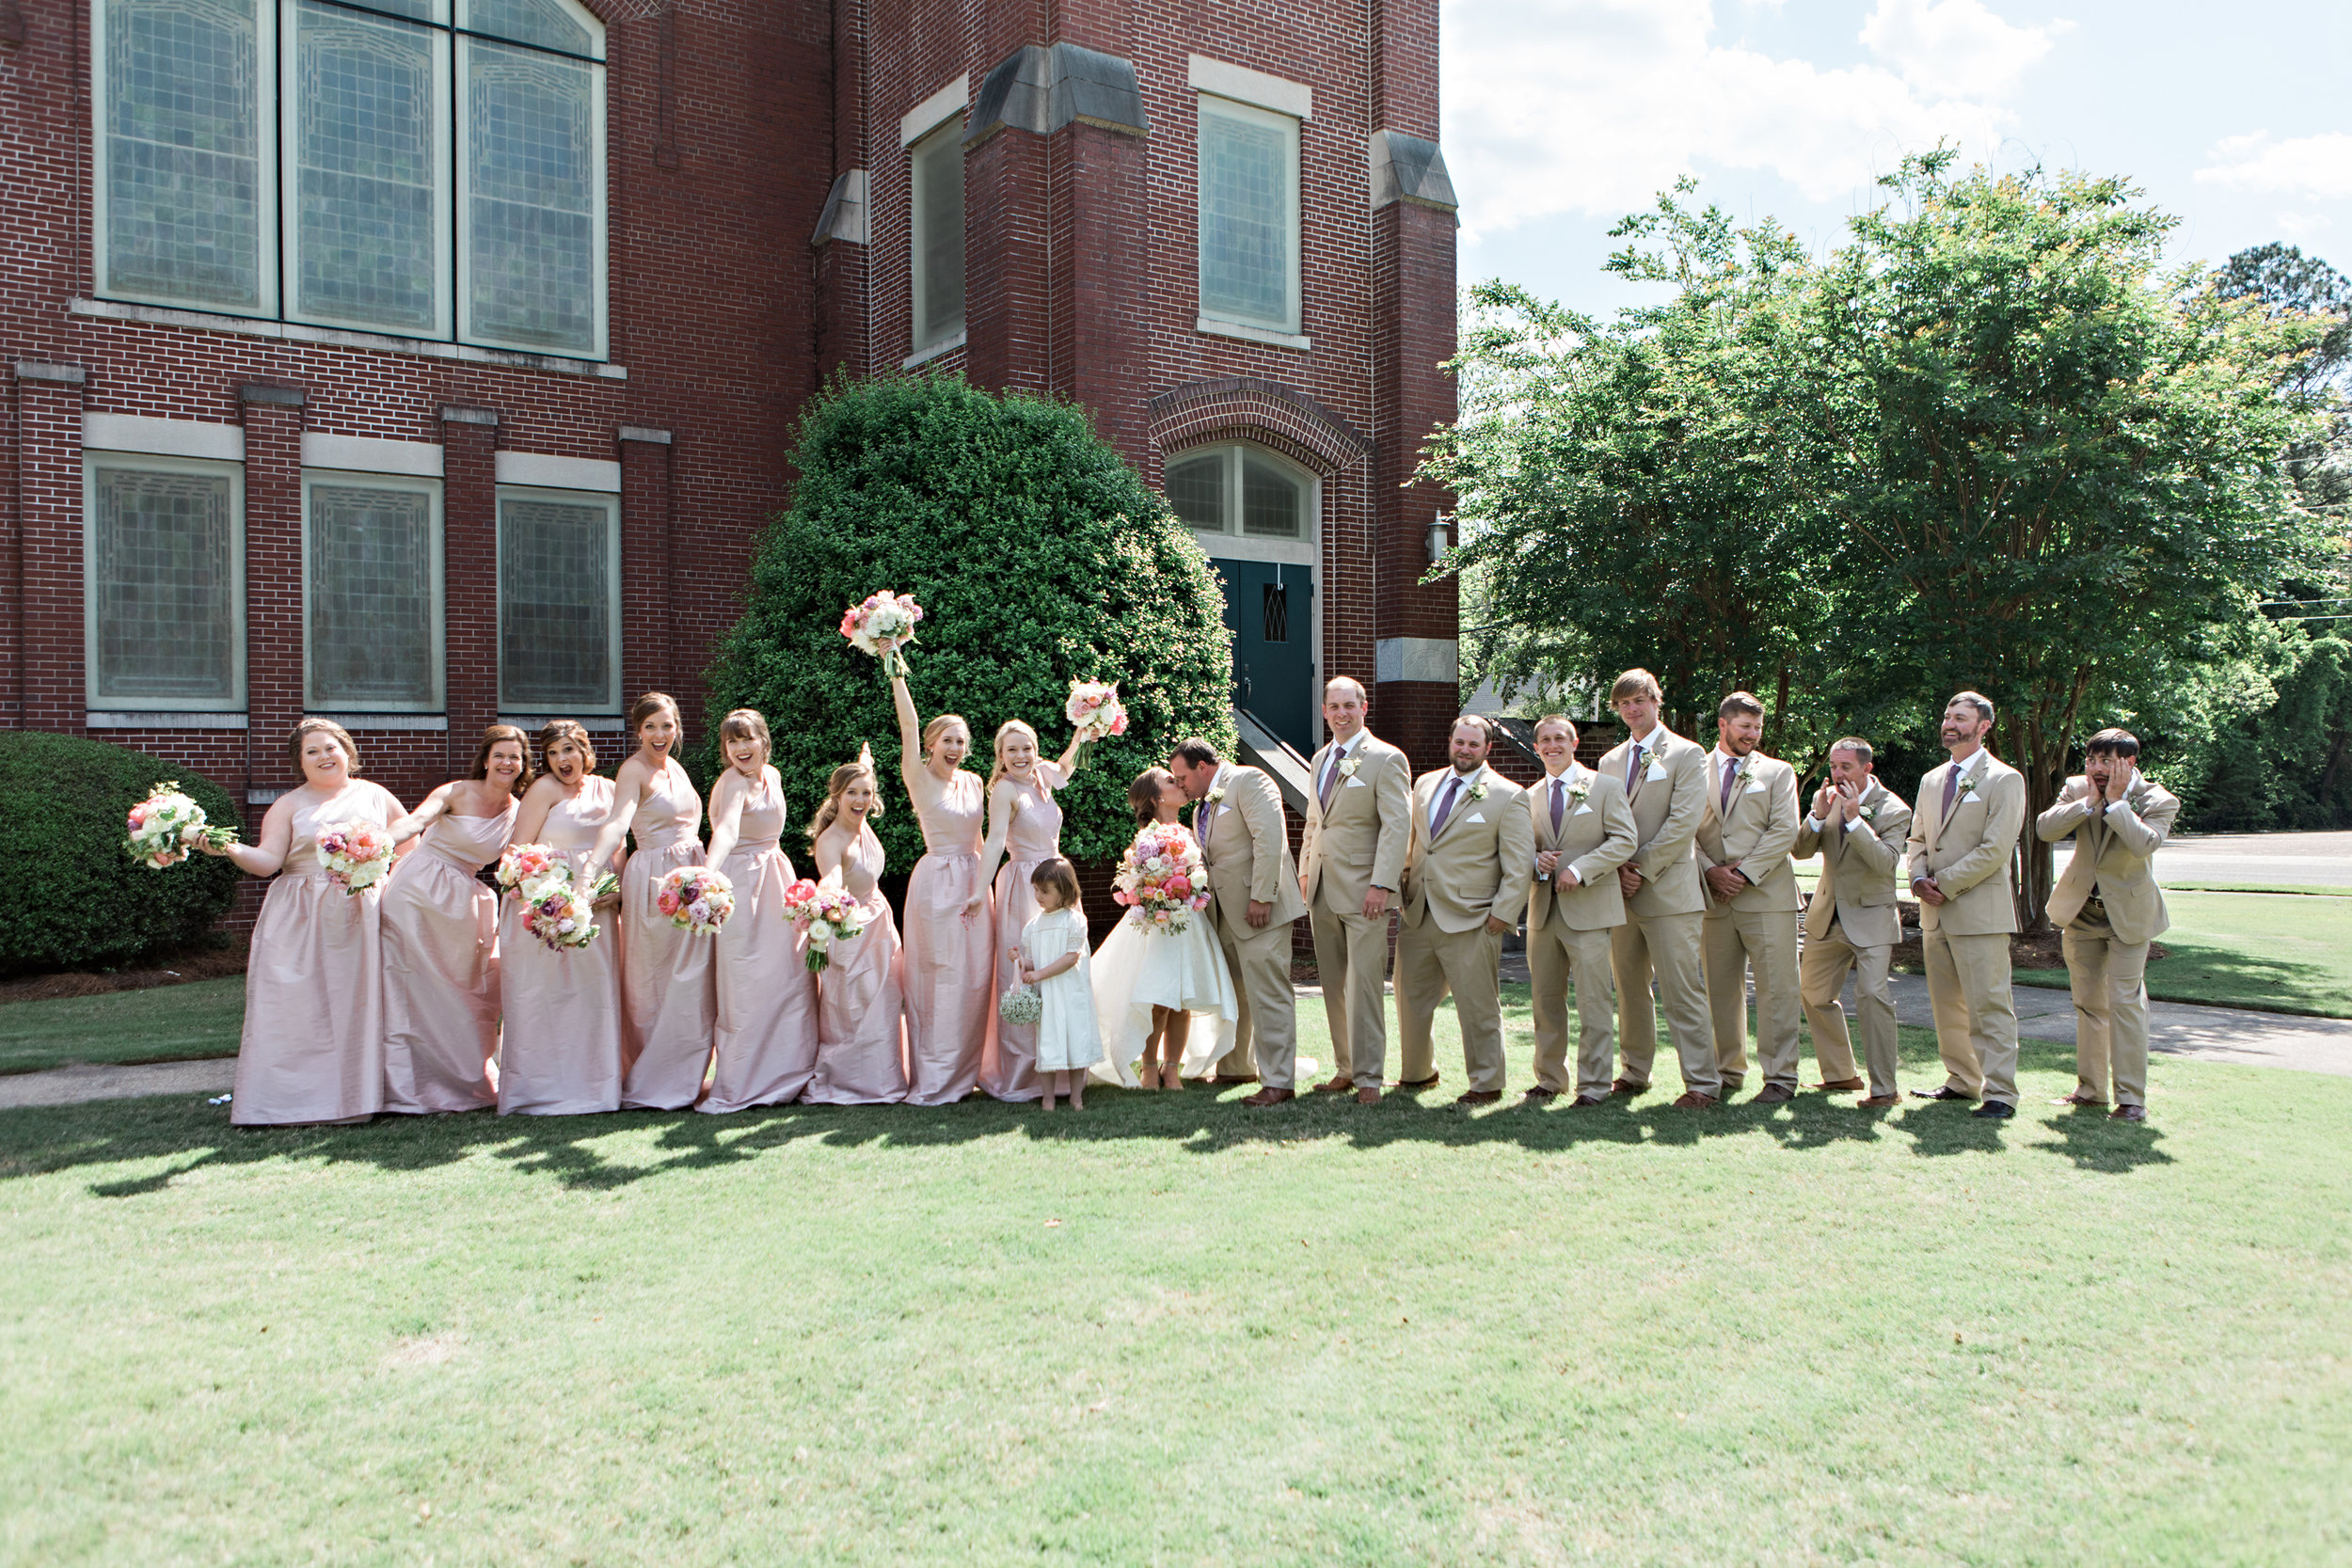 Alabama-Wedding-Photographers-Nick-Drollette-Hailey and Reed-115.jpg